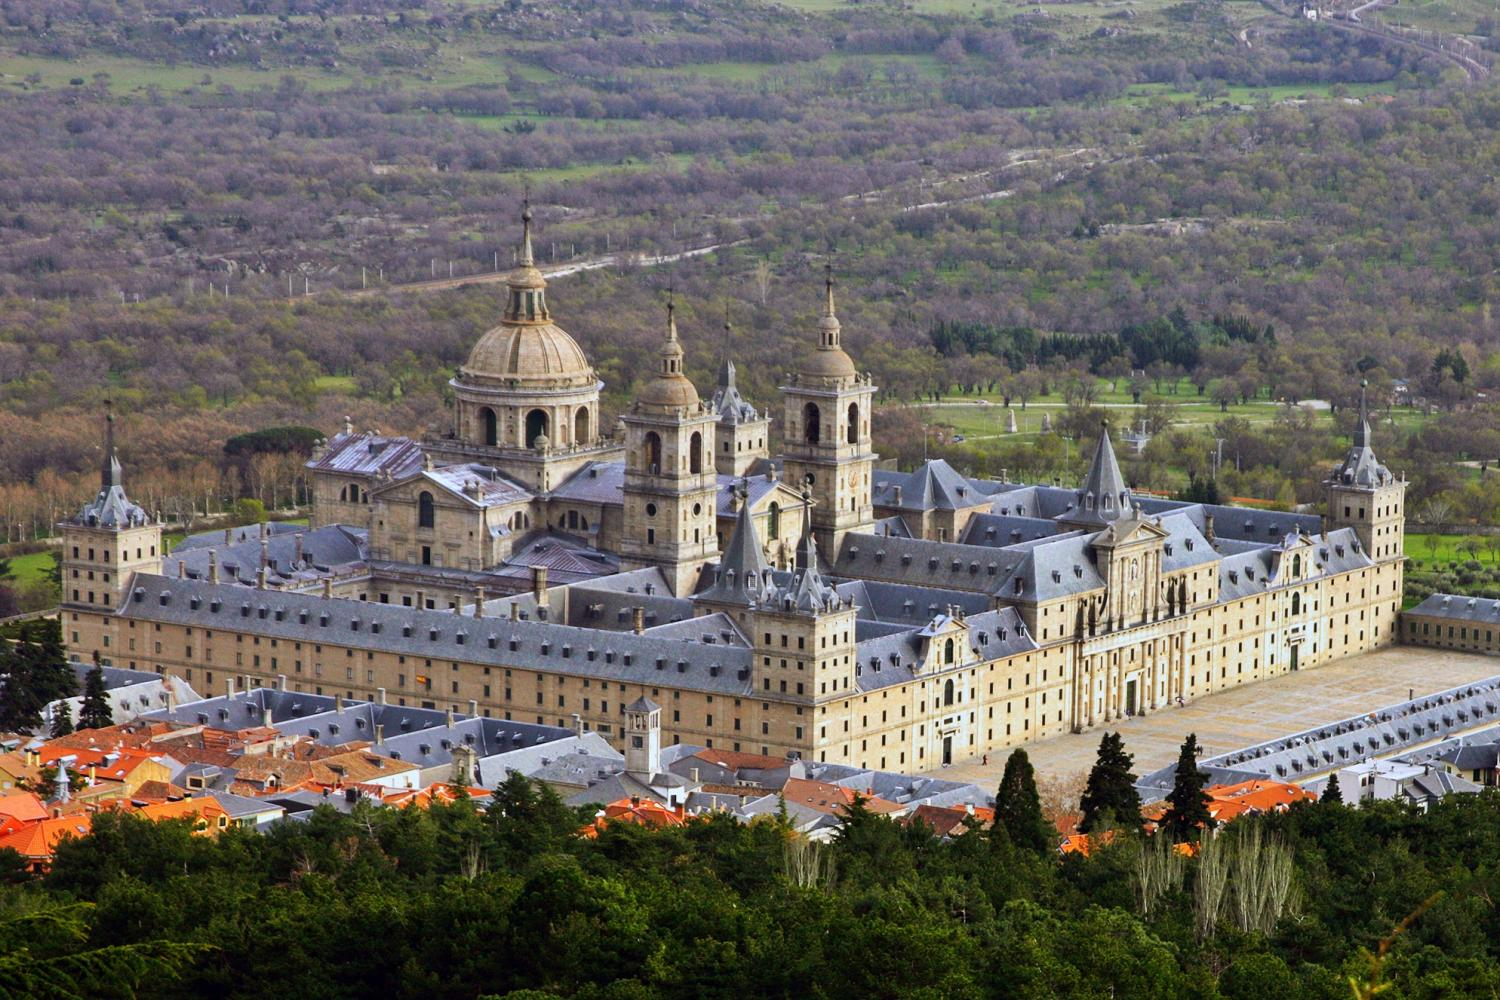 MONASTERIO DE EL ESCORIAL 2 (MADRID)